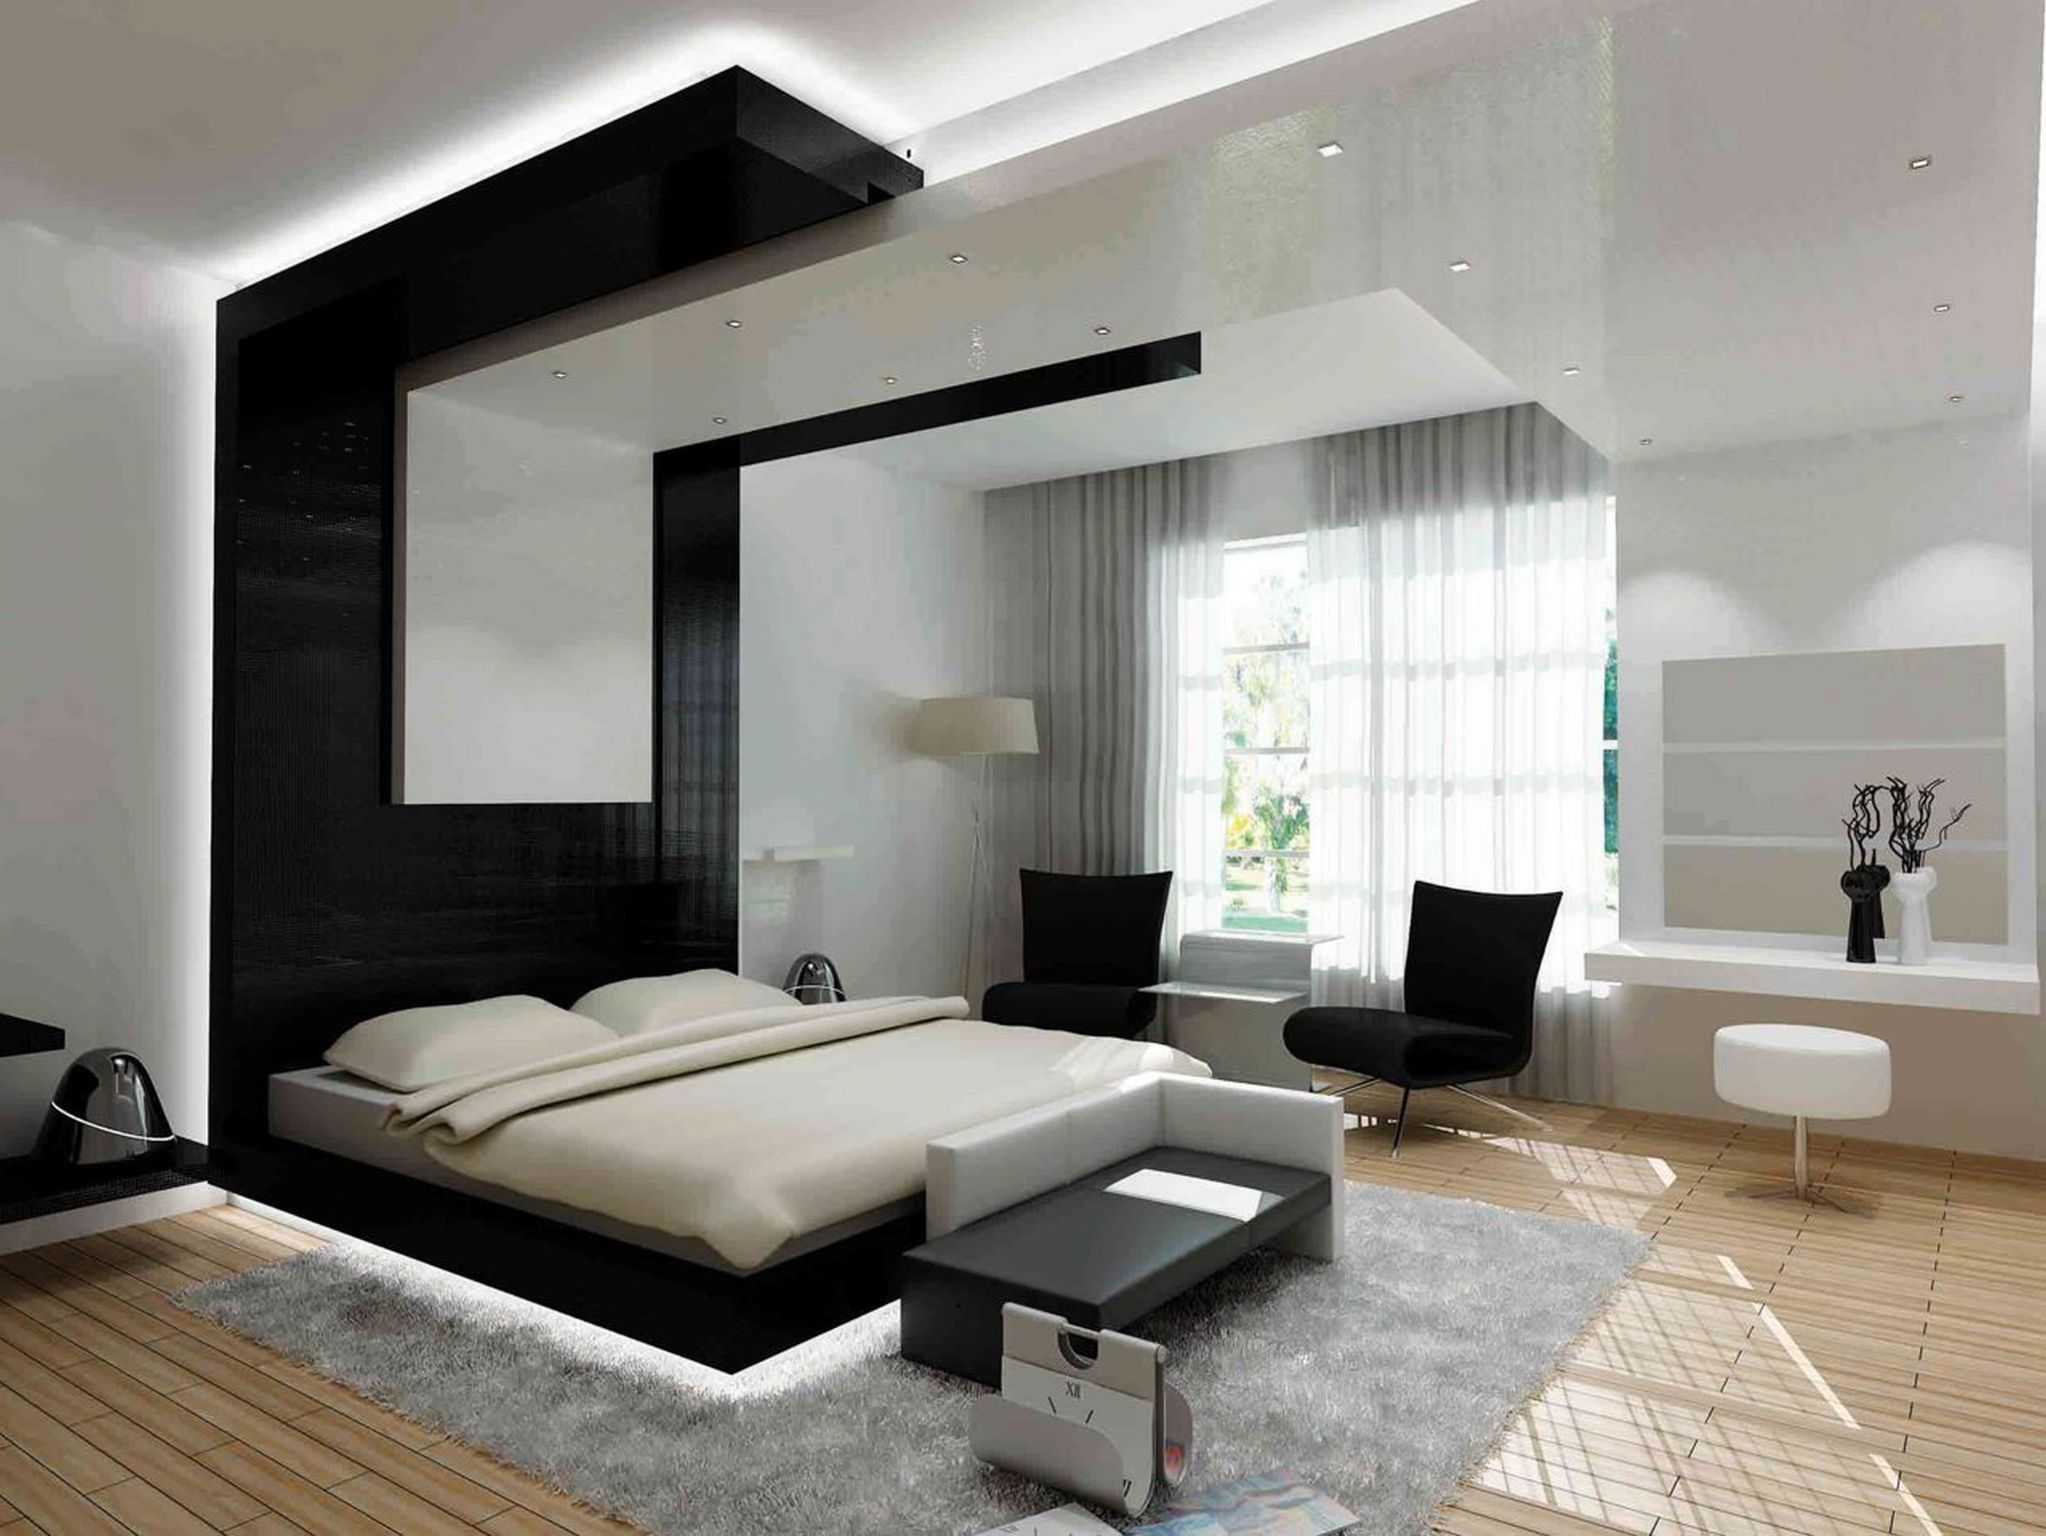 Marvelous Design Of The Brown Wooden Floor Added With Wall Mounted Lamp With White Ceiling As The Bedroom Modern Ideas